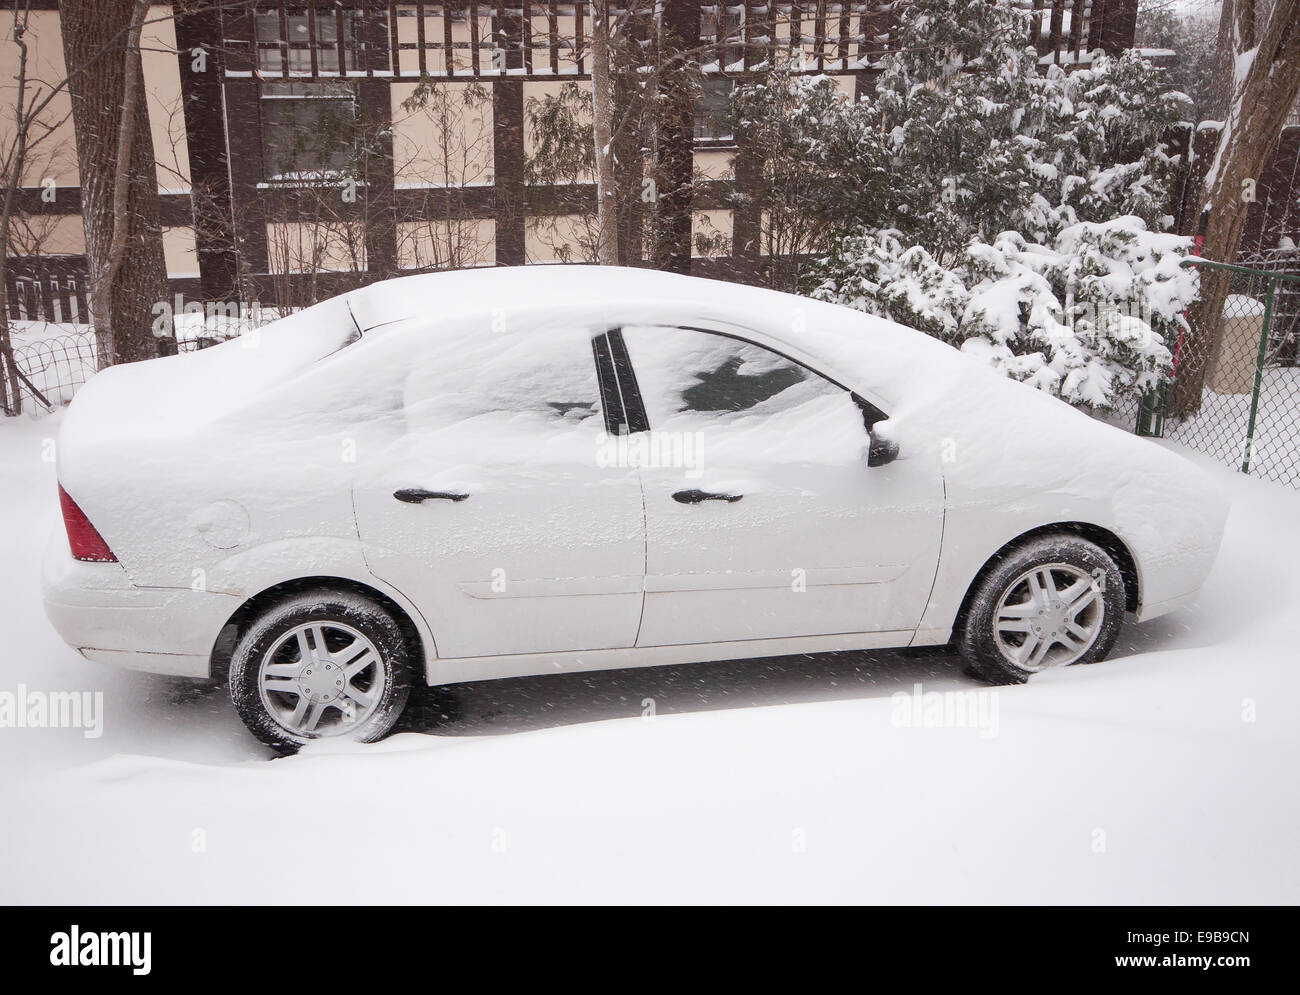 Snowed in driveway after winter storm - Stock Image